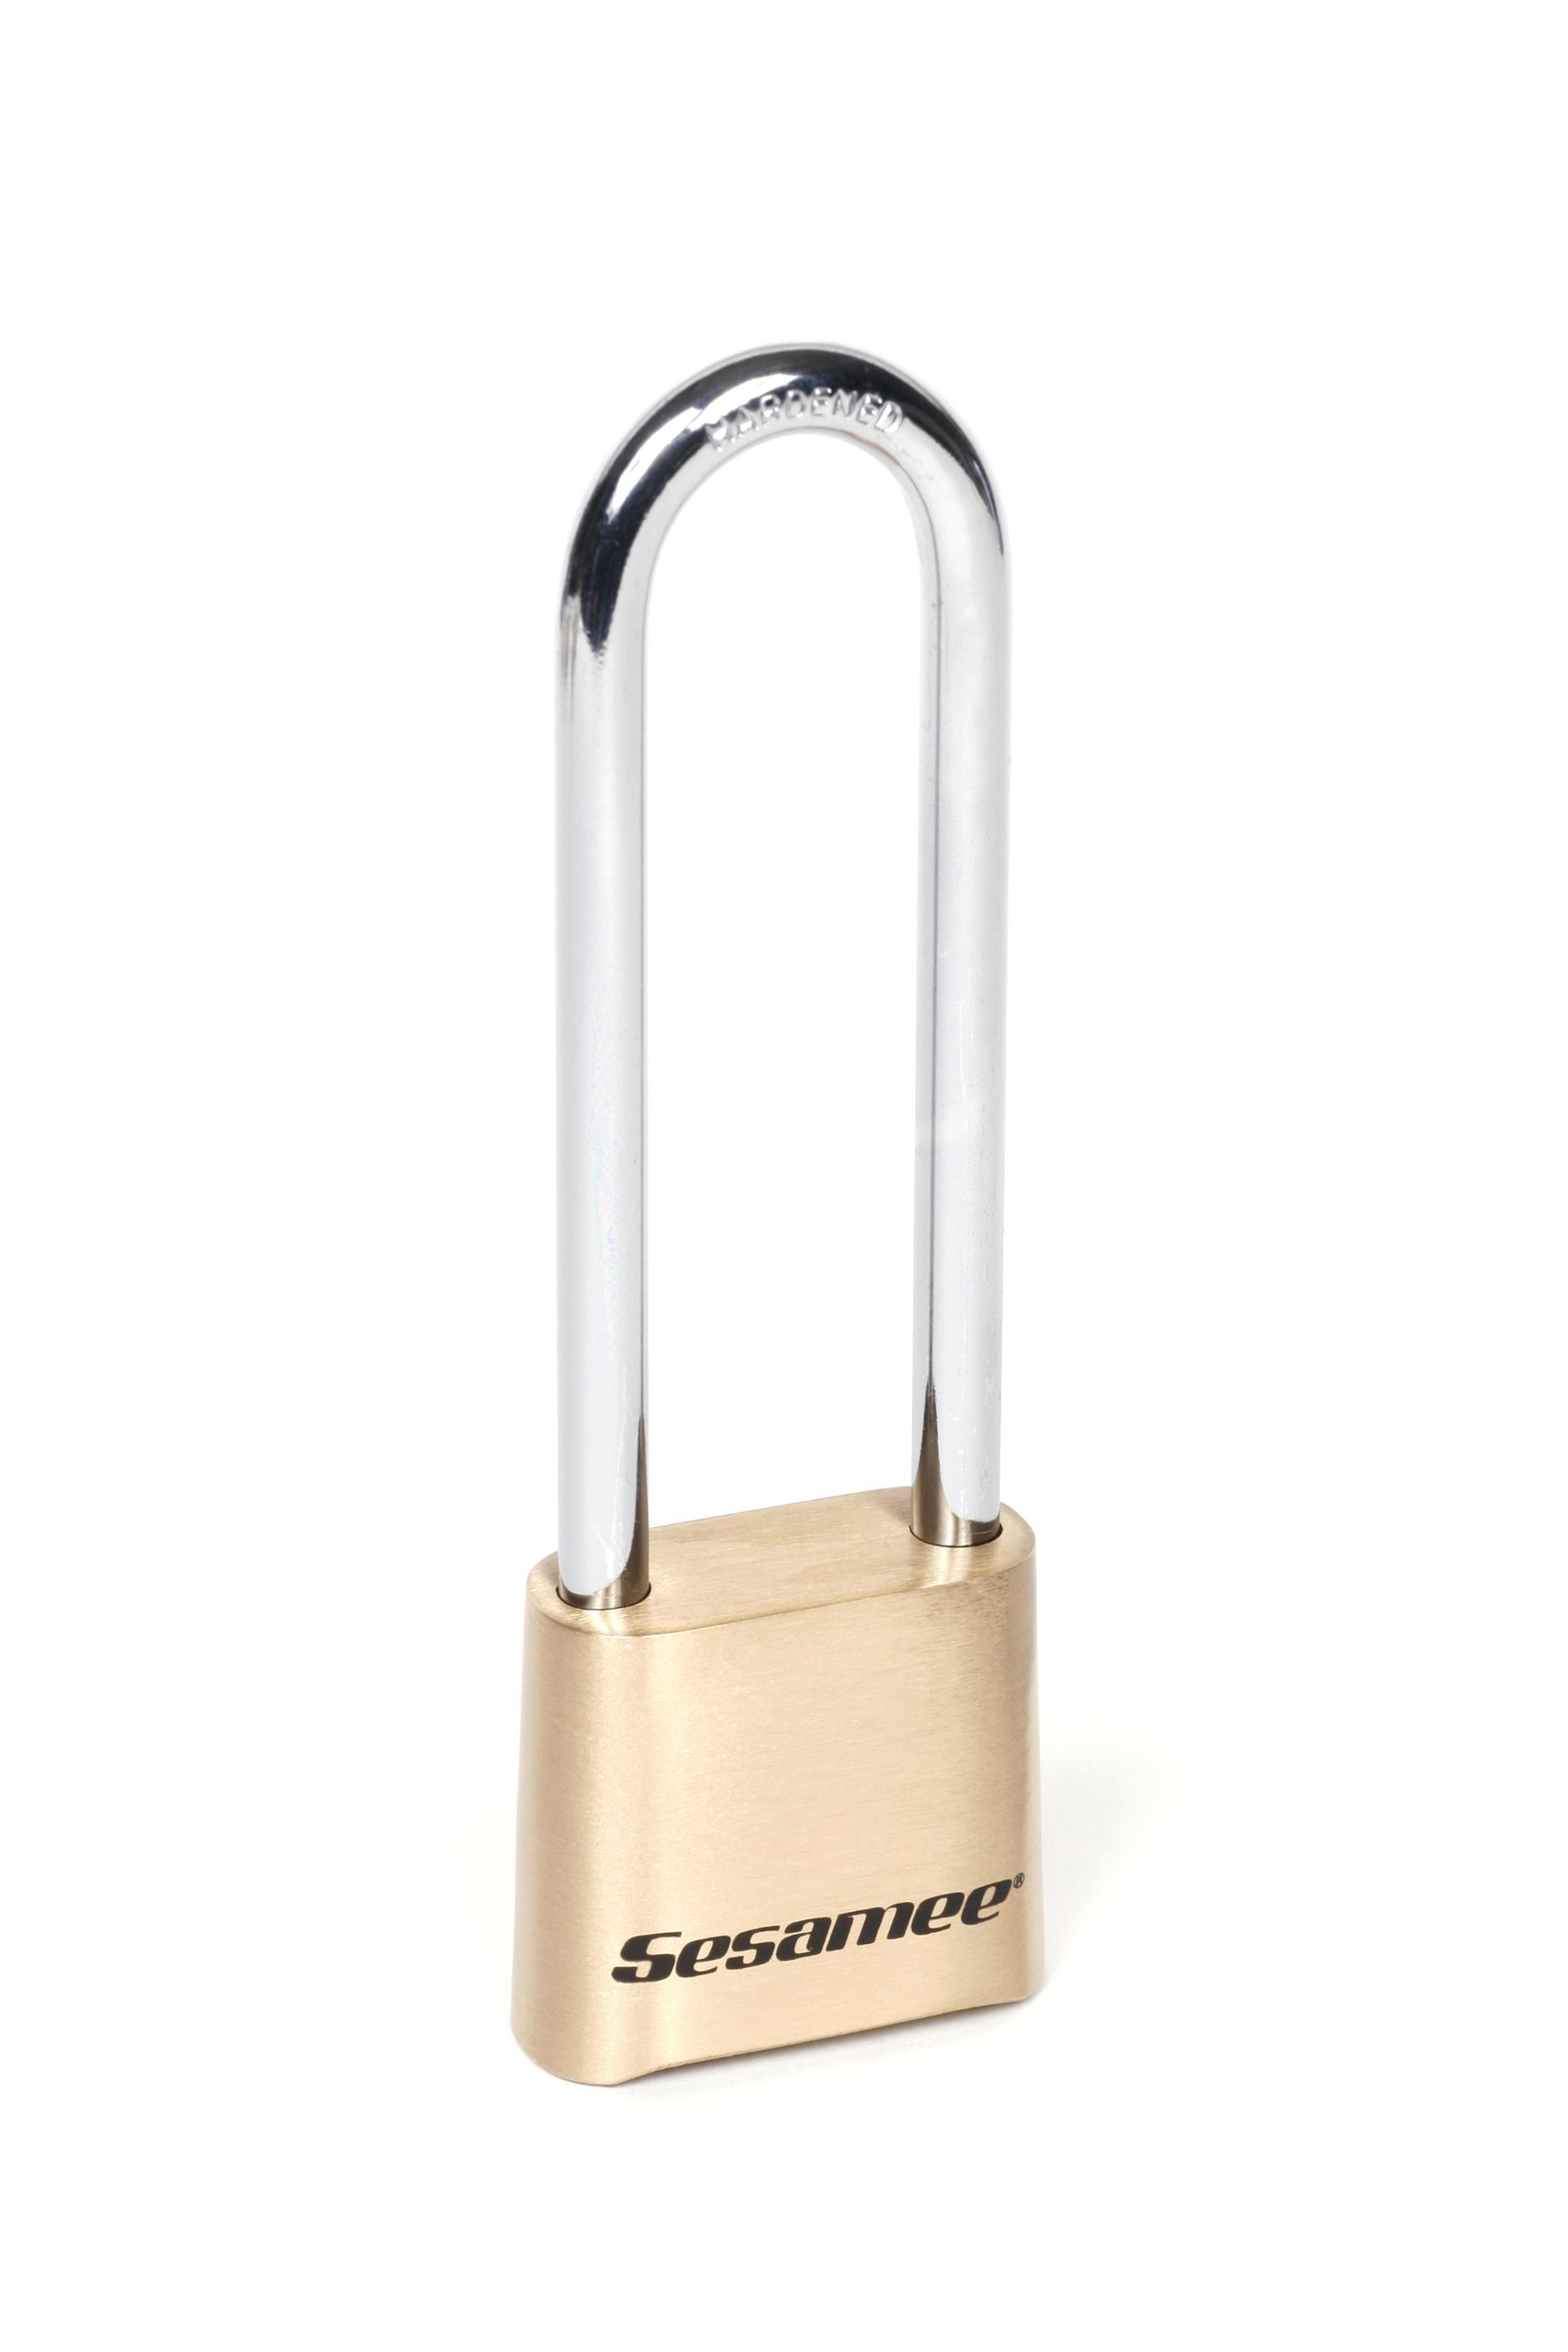 Sesamee K440 4 Dial Bottom Resettable Combination Brass Padlock with 4-Inch Hardened Steel Shackle and 10,000 Potential Combinations